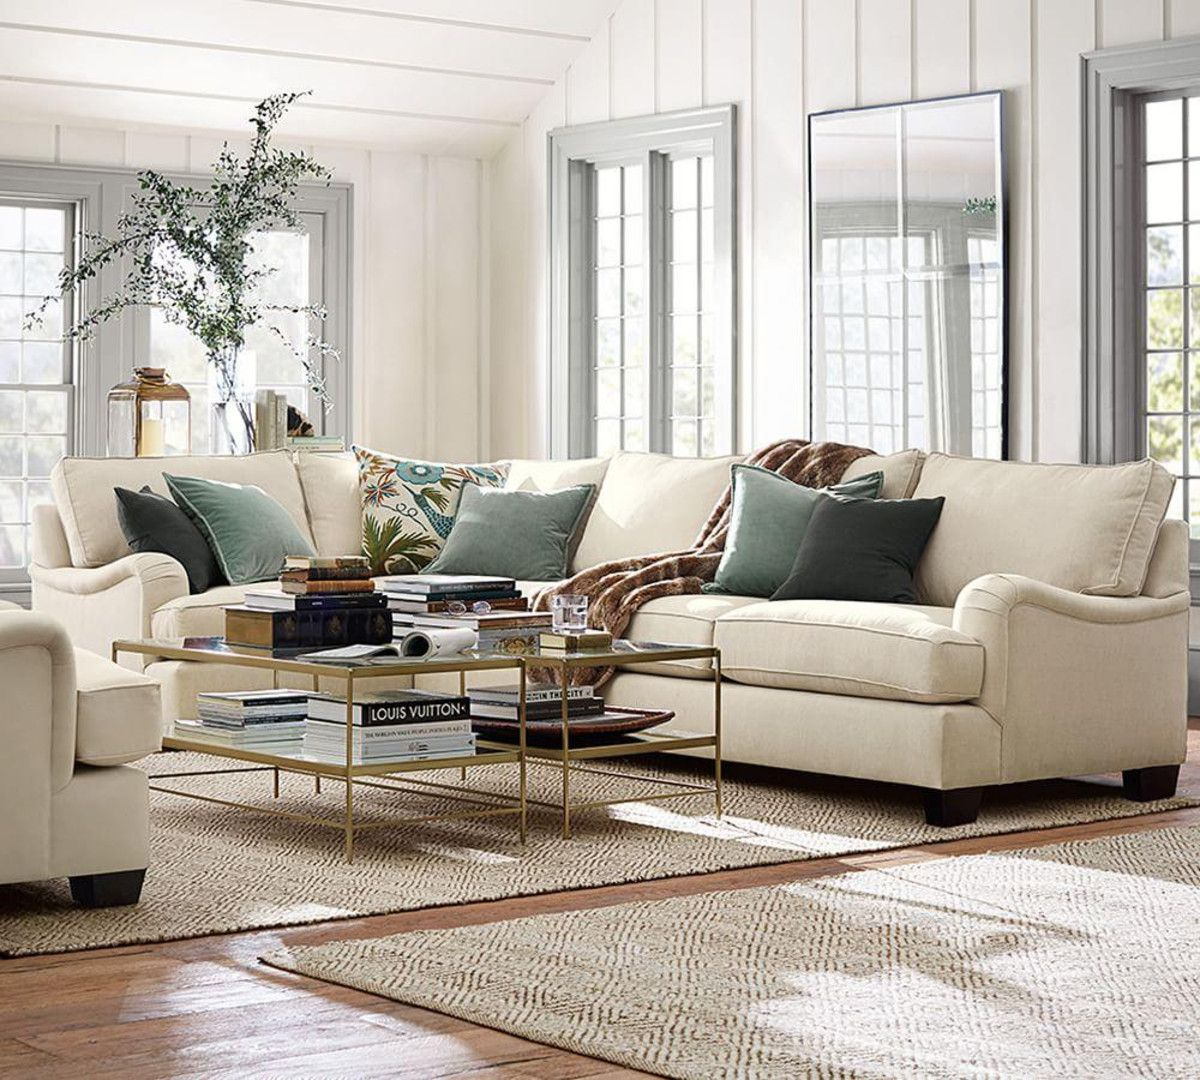 Explore Pottery Barn Couch, Velvet Pillows, And More! Leona Coffee Table